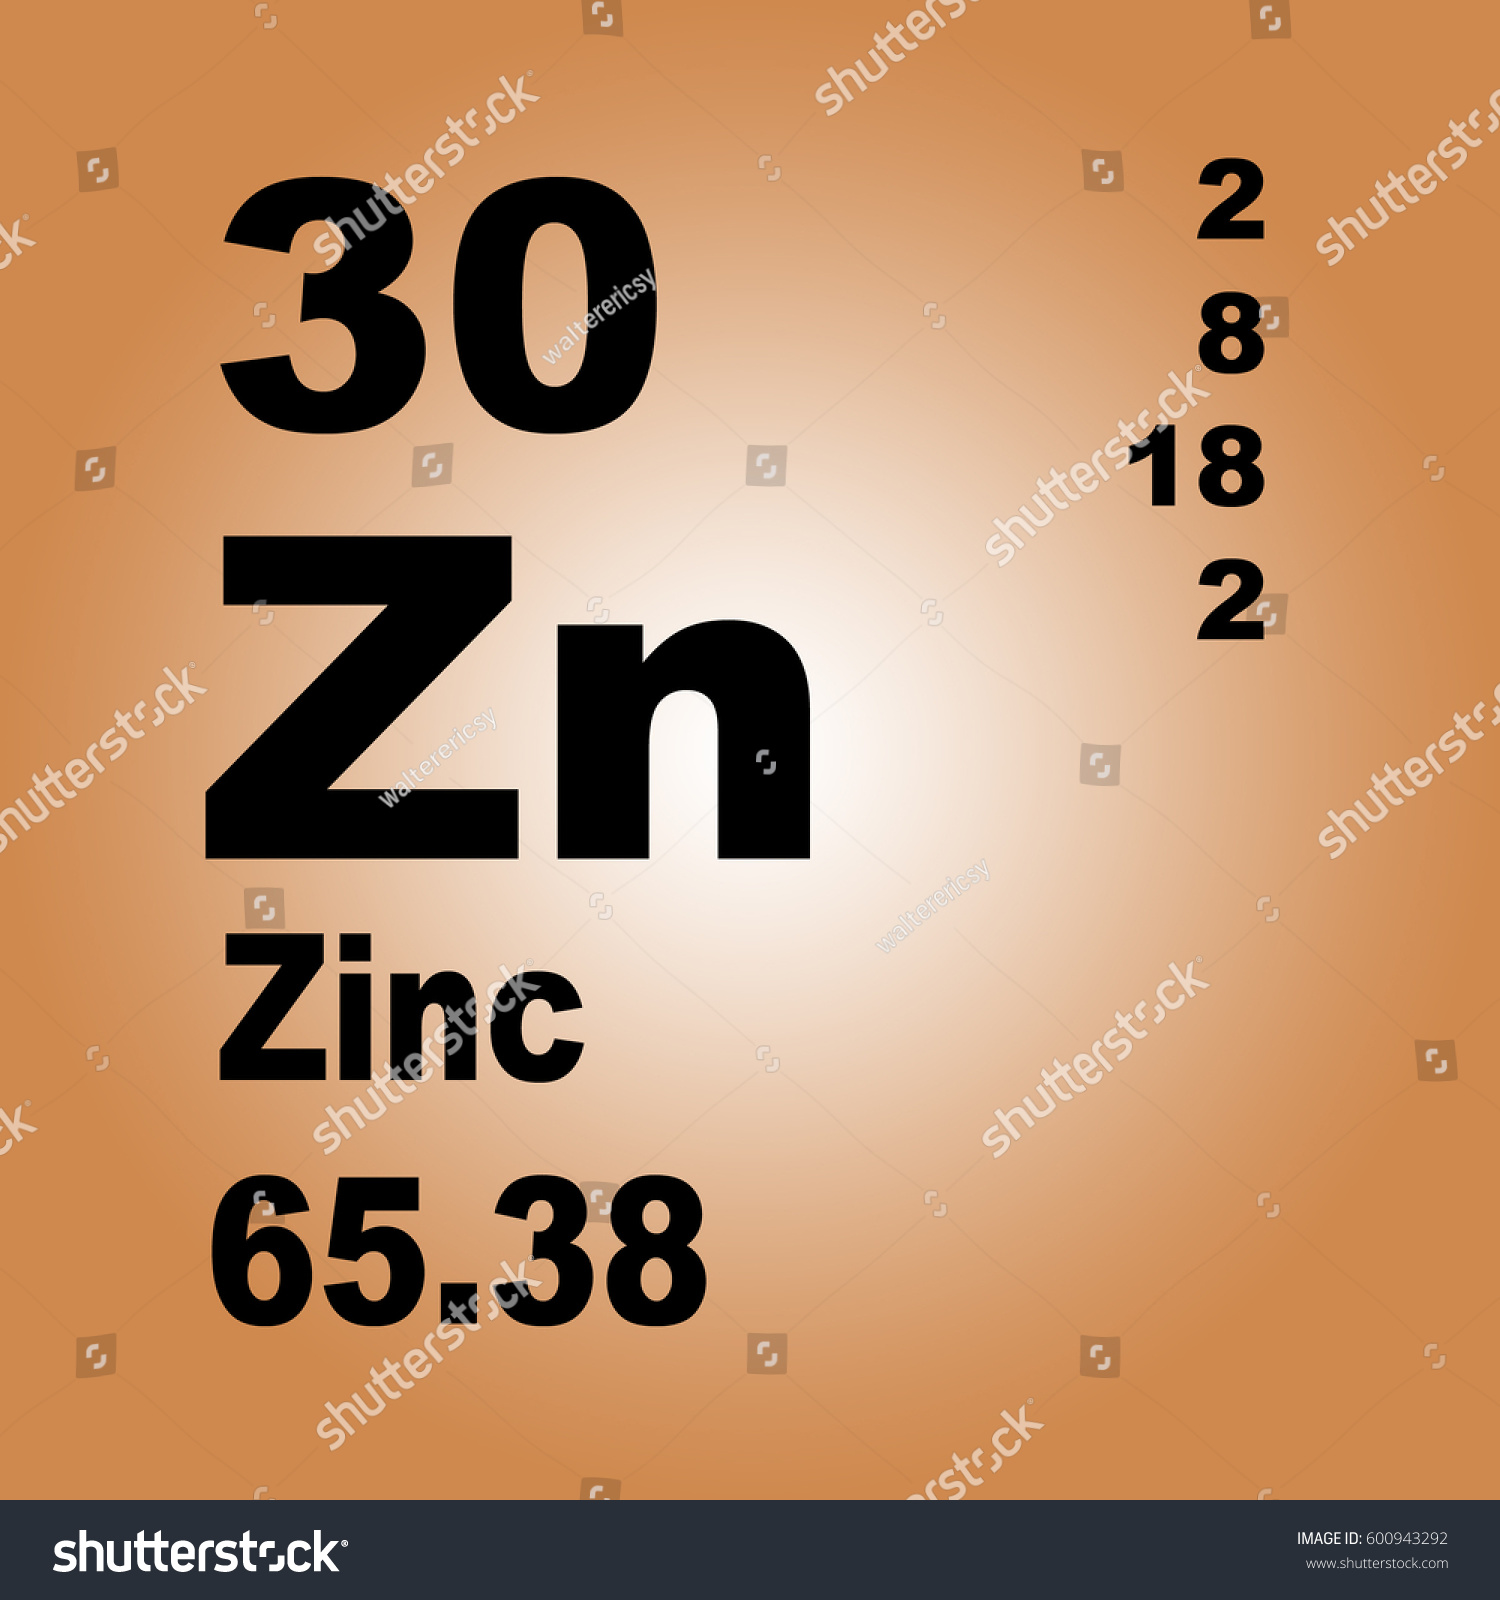 Element zn periodic table image collections periodic table images periodic table for zinc images periodic table images zinc periodic table elements stock illustration 600943292 zinc gamestrikefo Gallery